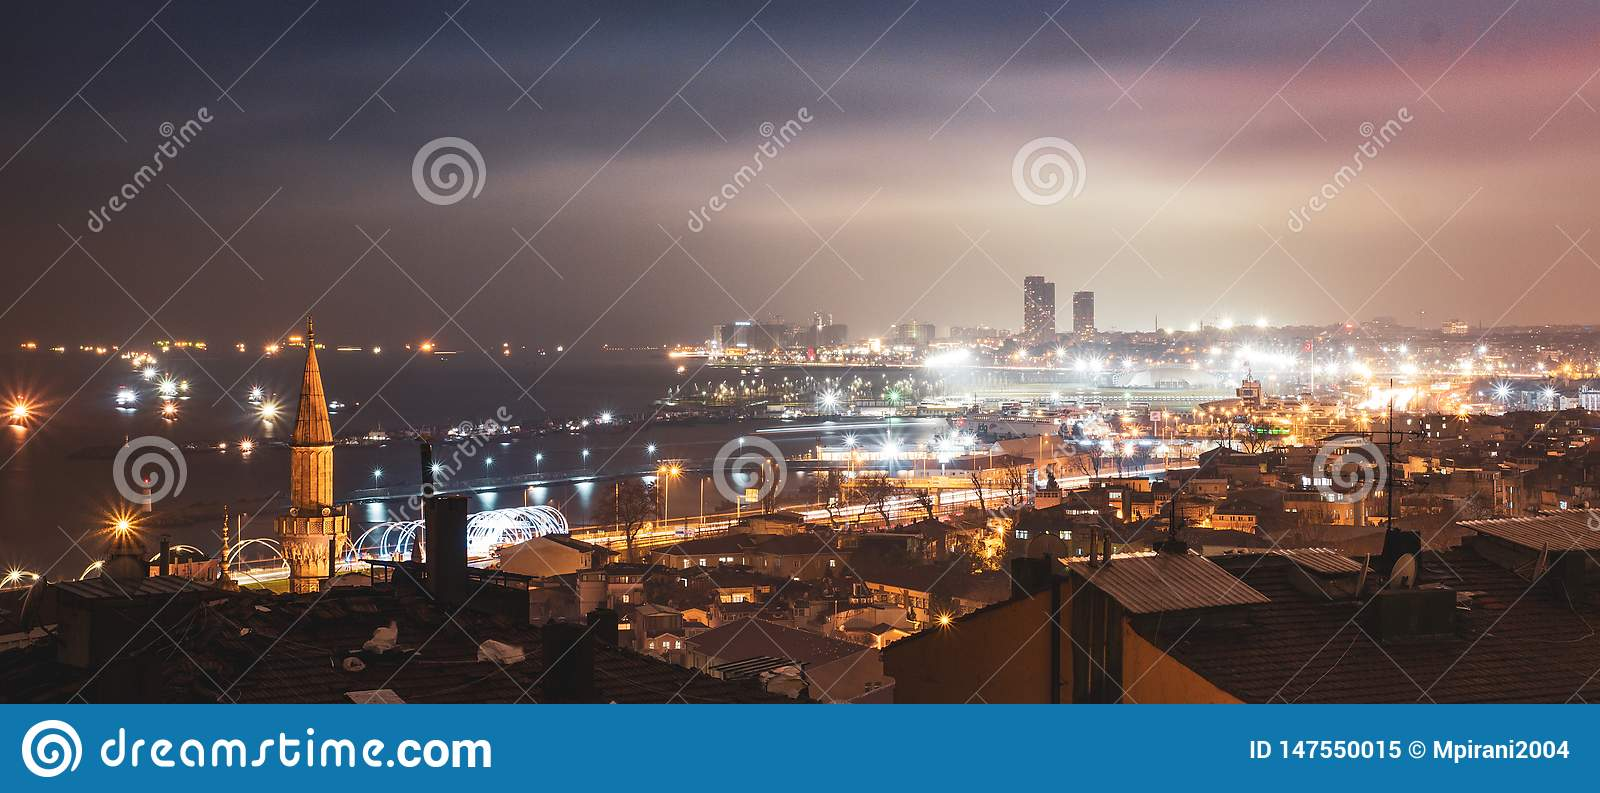 The Beautiful City of Istanbul in the Darkness of the Night